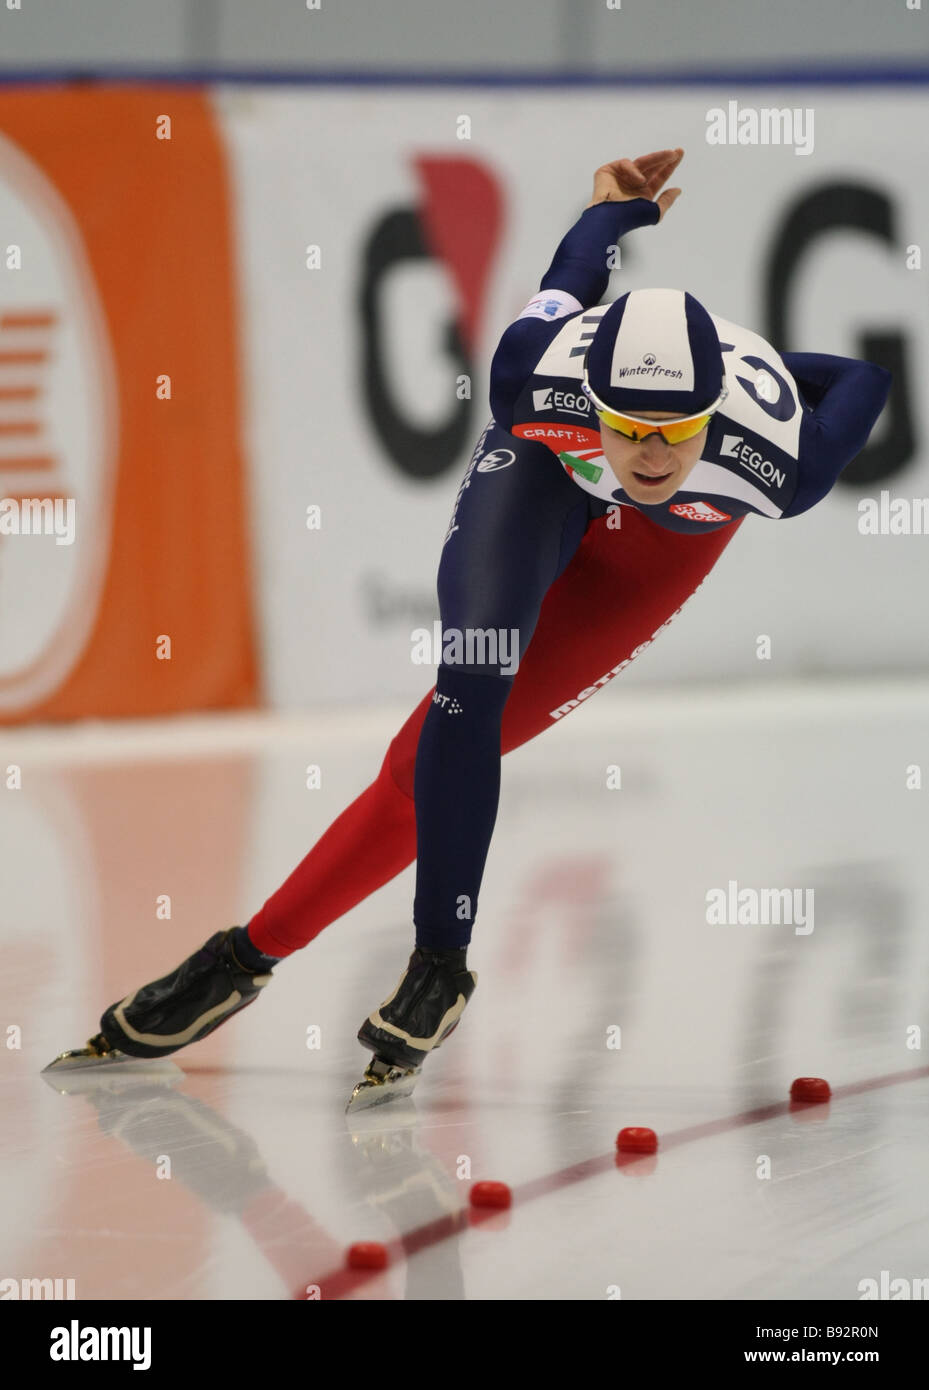 Martina Sablikova the Czech Republic took 1st place in the 3000 meters event at the European skating championships - Stock Image